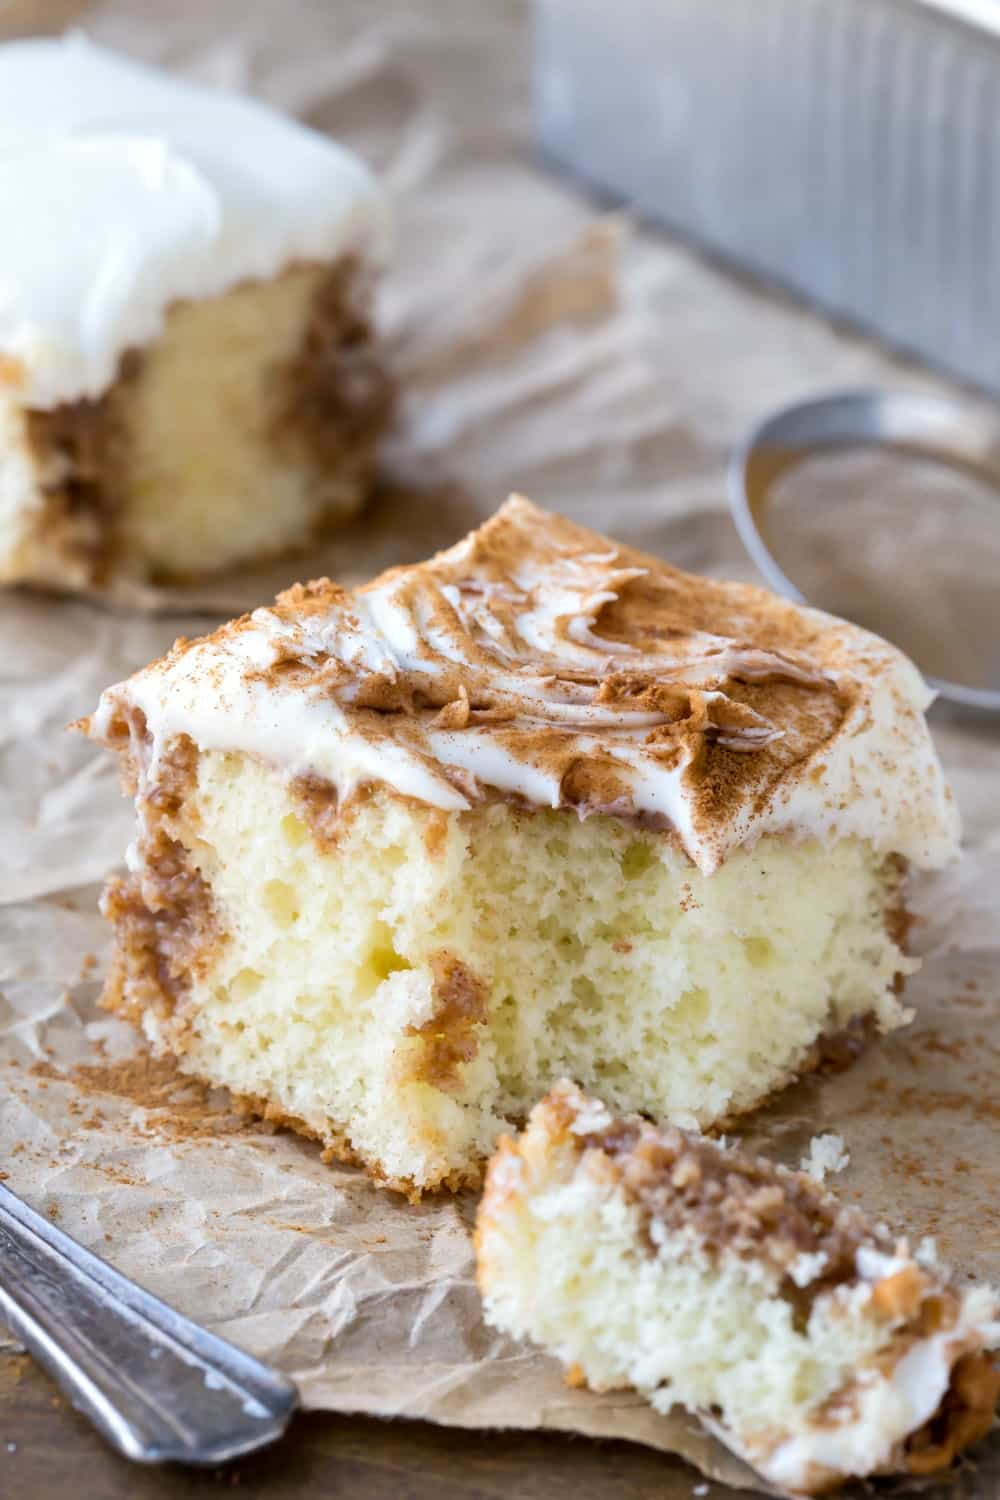 Cinnamon Roll Poke Cake - 20 Best Poke Cake Recipes